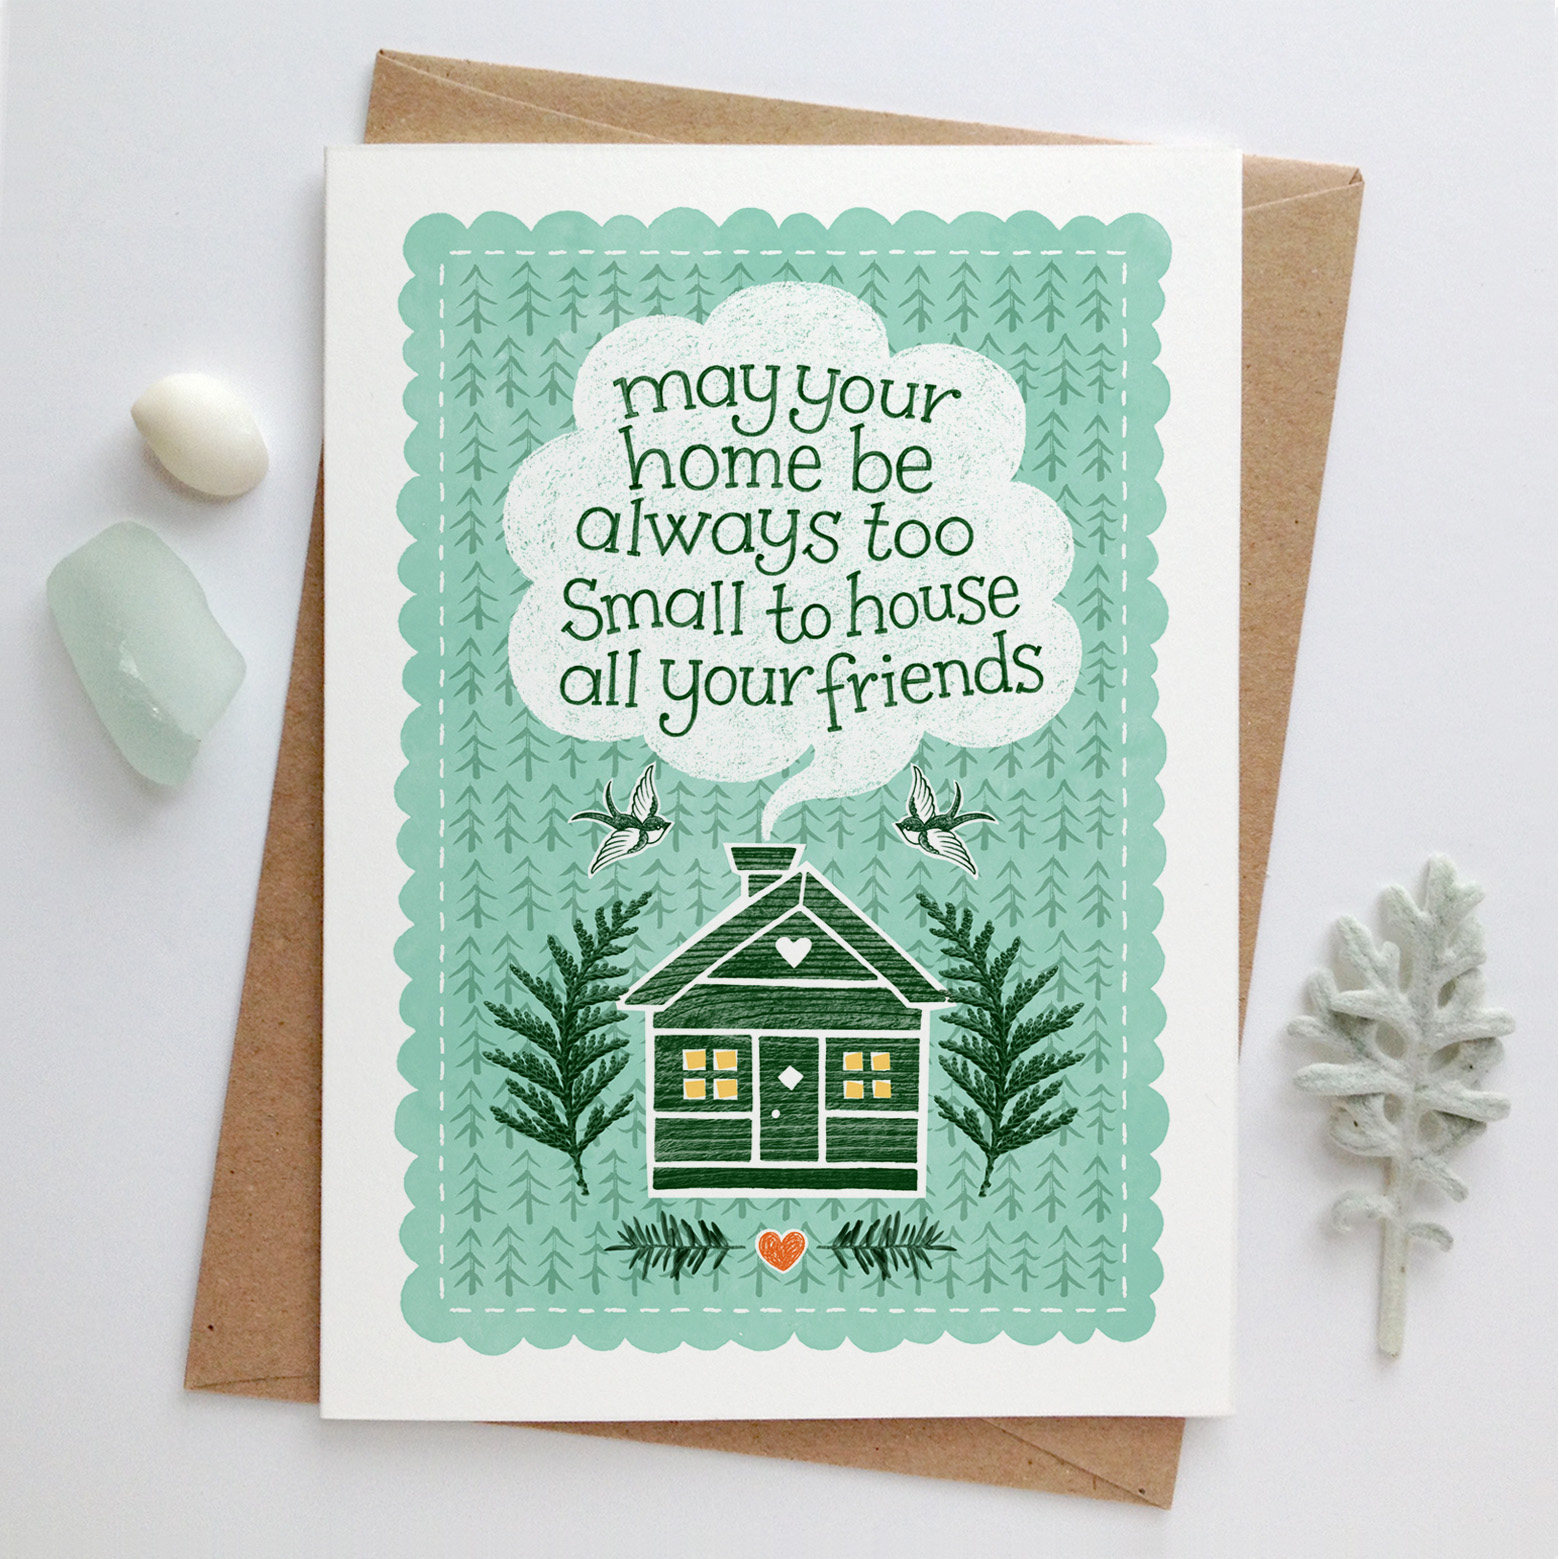 new.house.friends.card.envelope.1